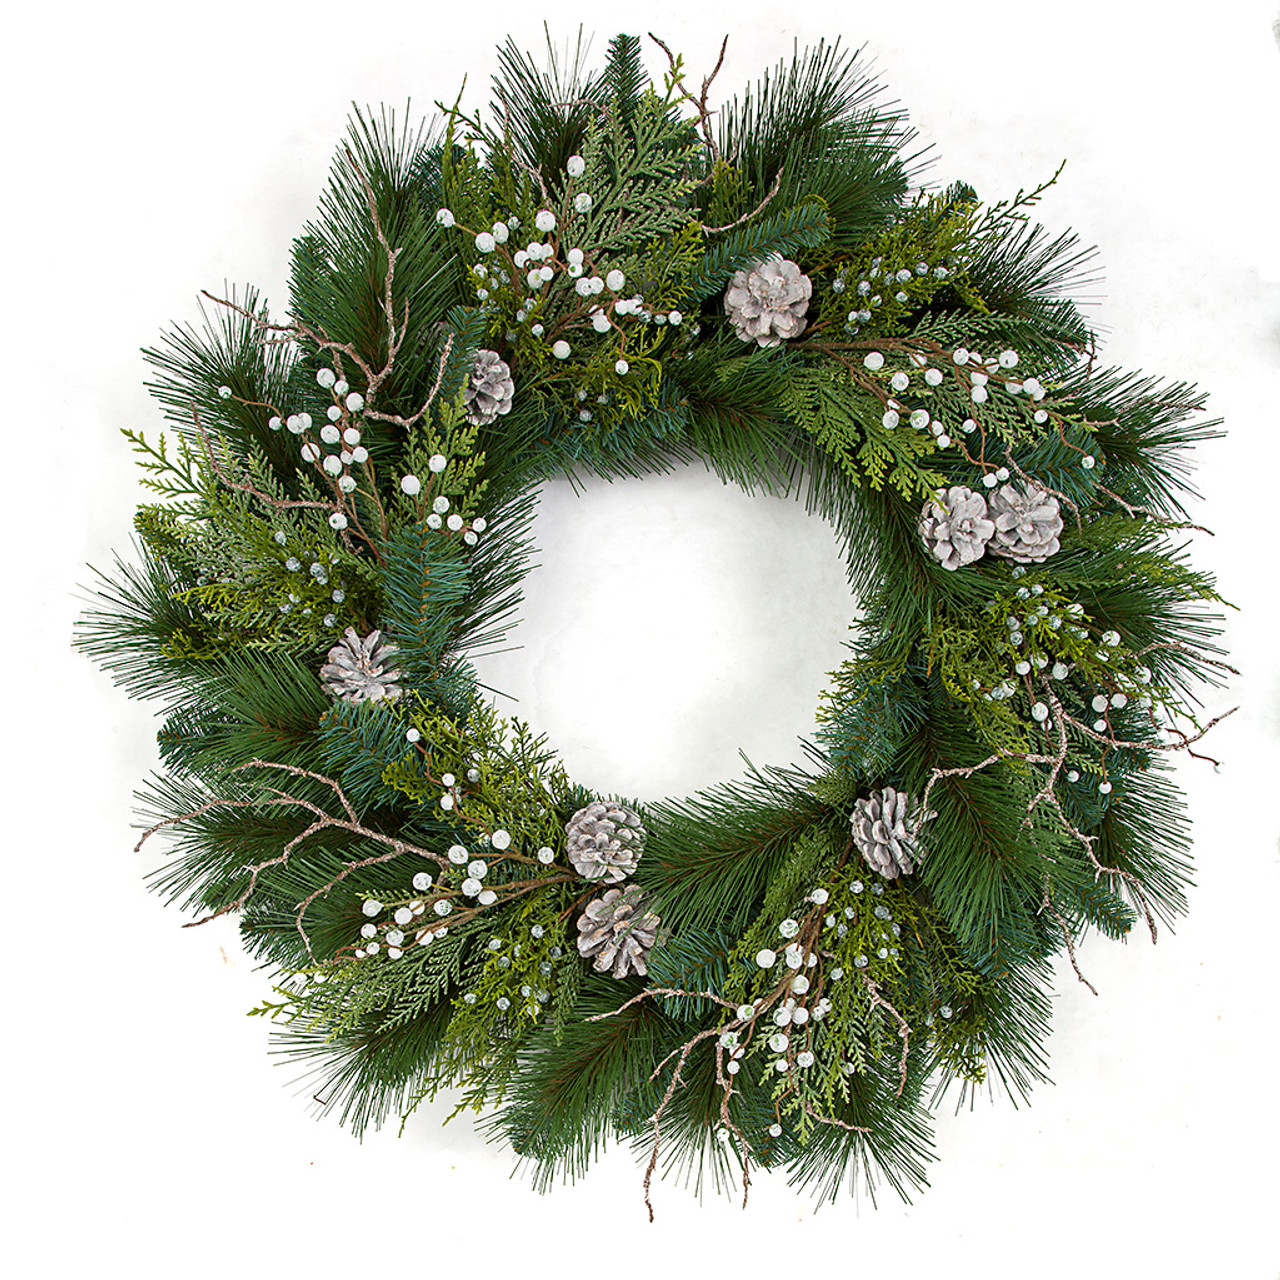 30 Mixed Pvc Alban Pine Wreath With White Berries Pine Cones Wholesale Premade Wreaths Autograph Foliages